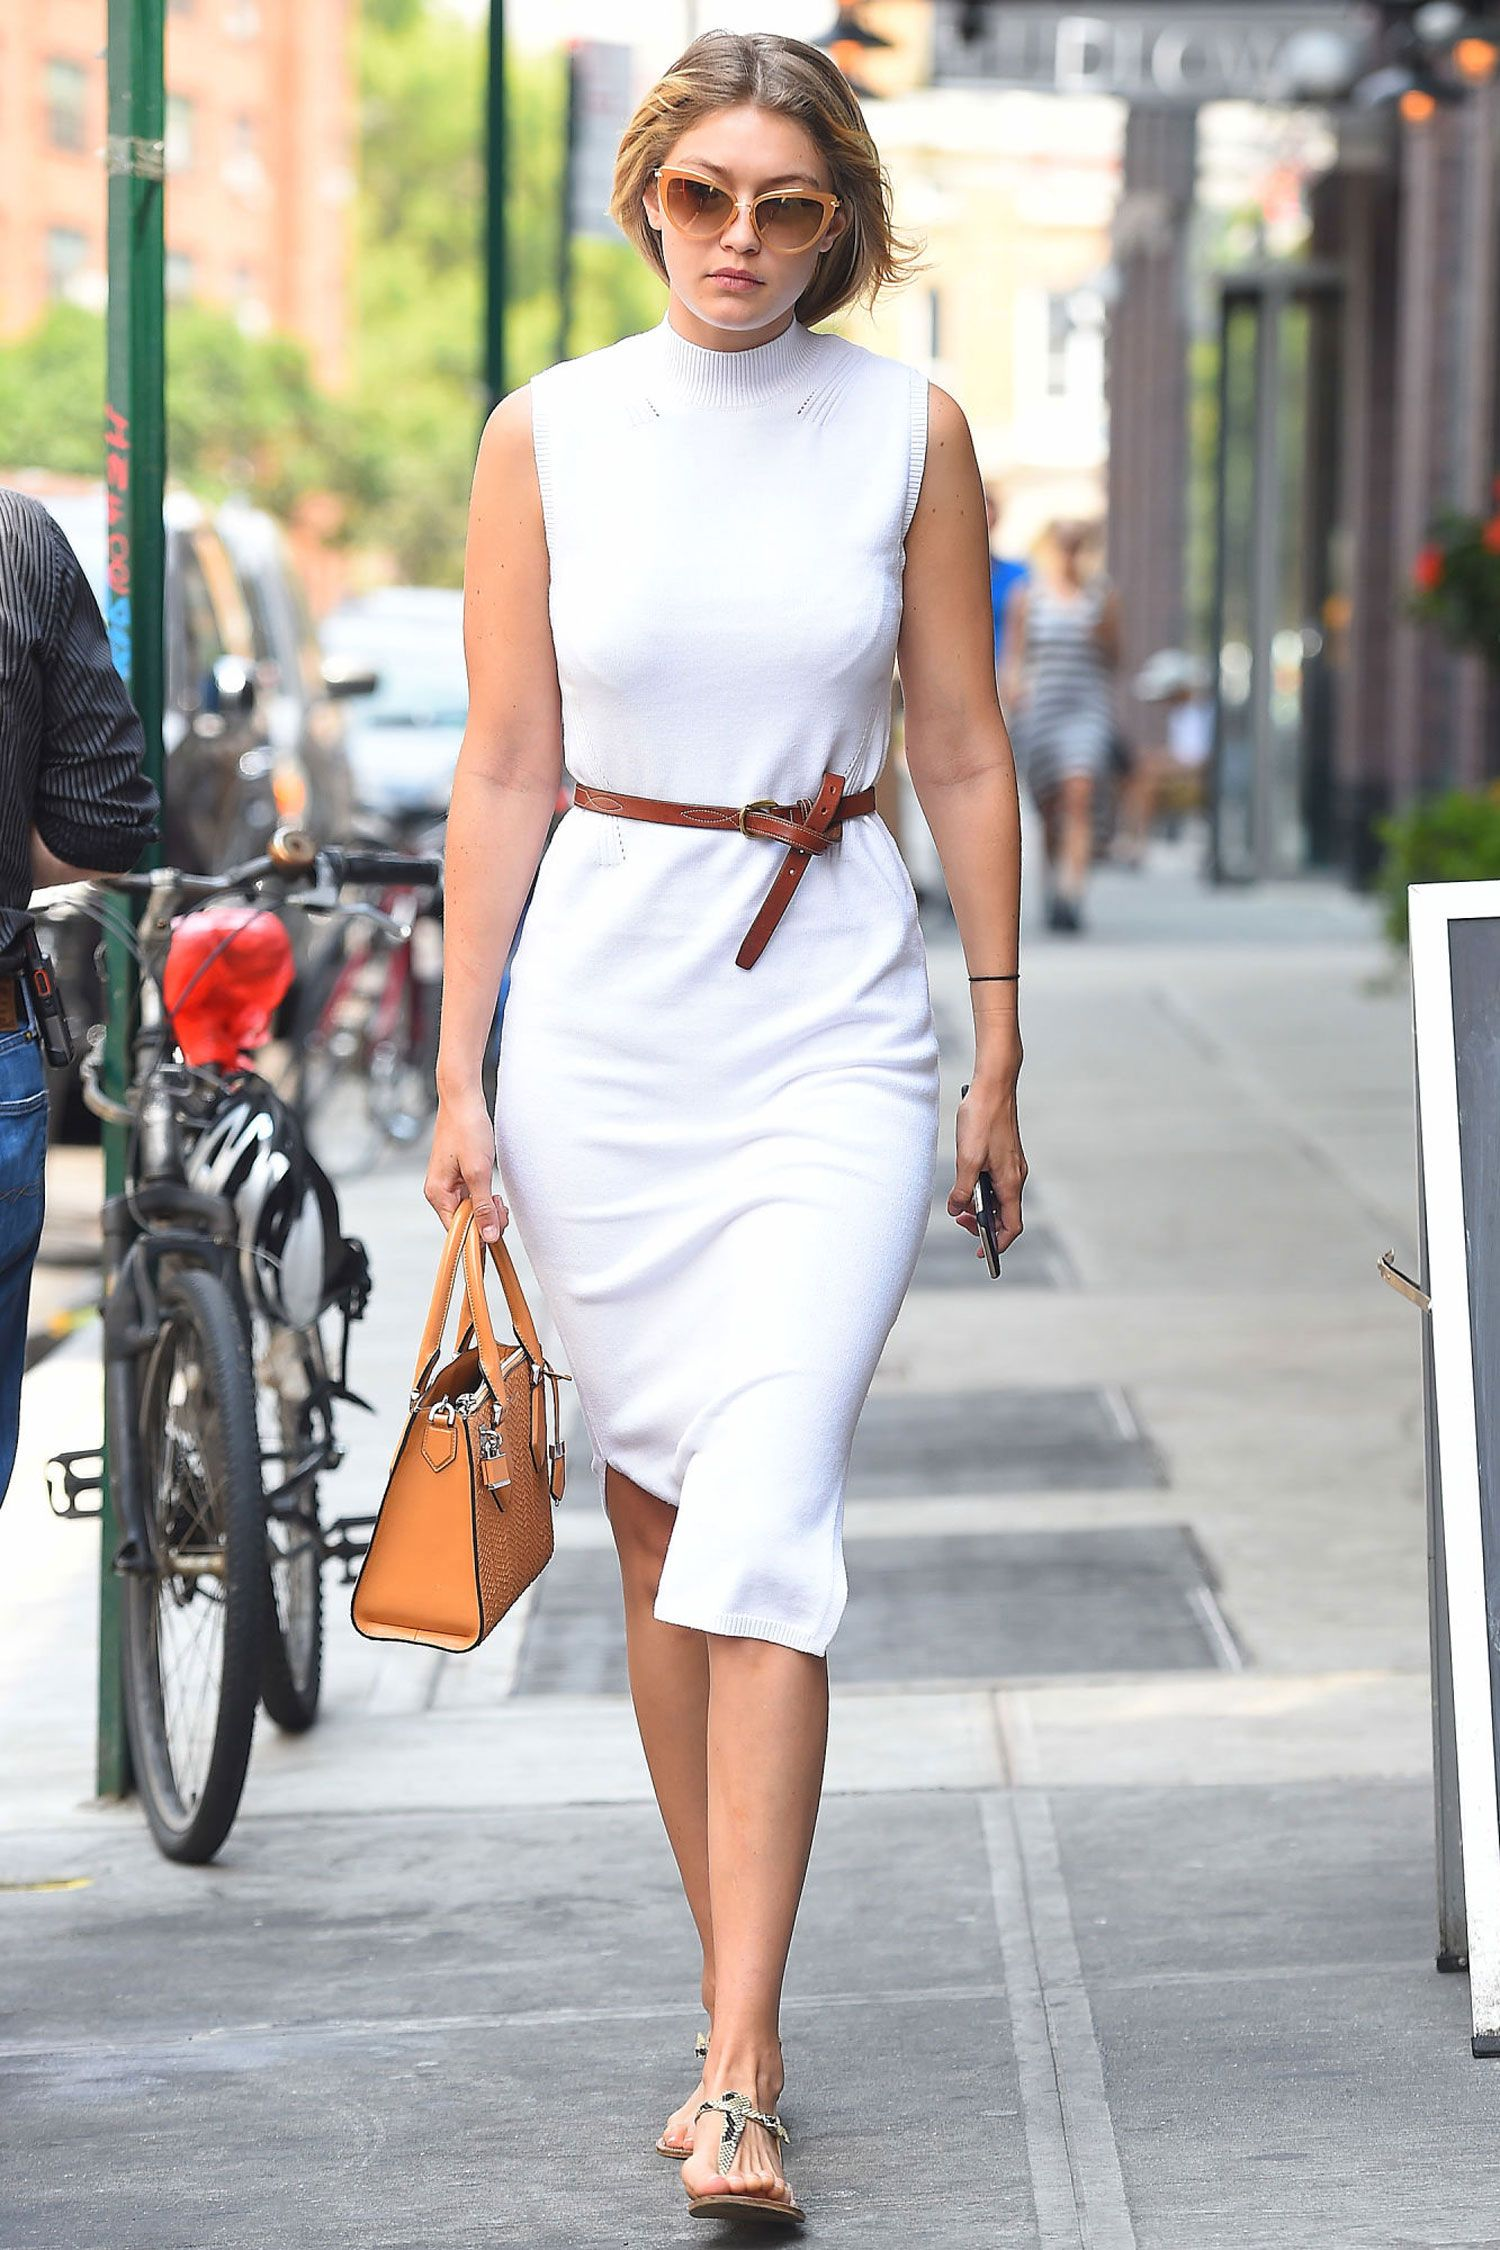 549ff474721 Celebrity White Outfit Ideas - White Outfit Inspiration